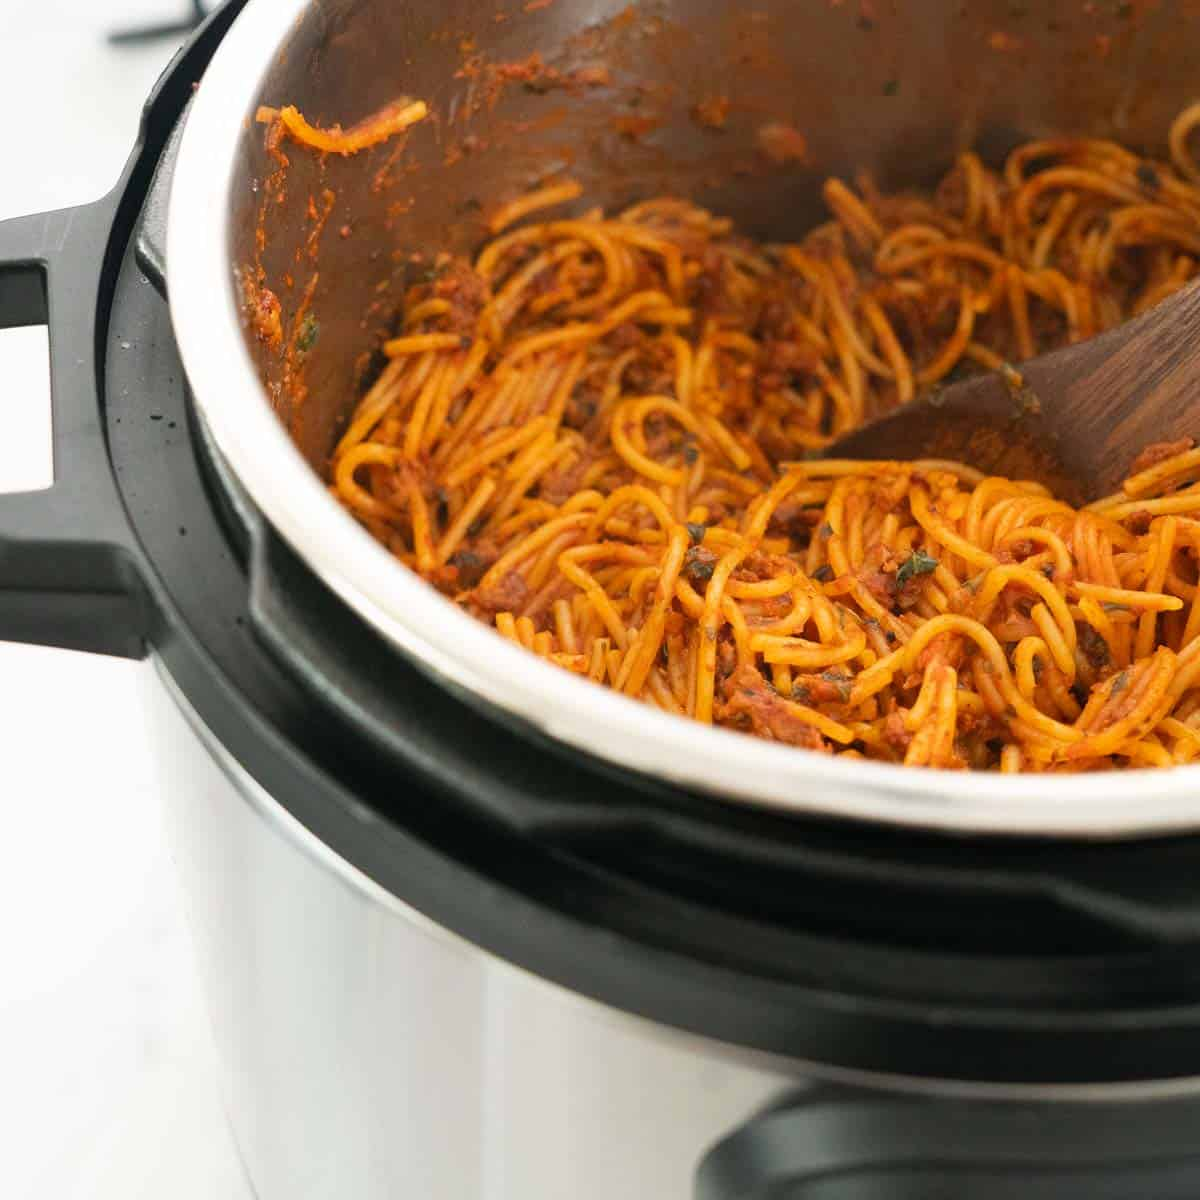 Spaghetti bolognese cooked in an instant pot